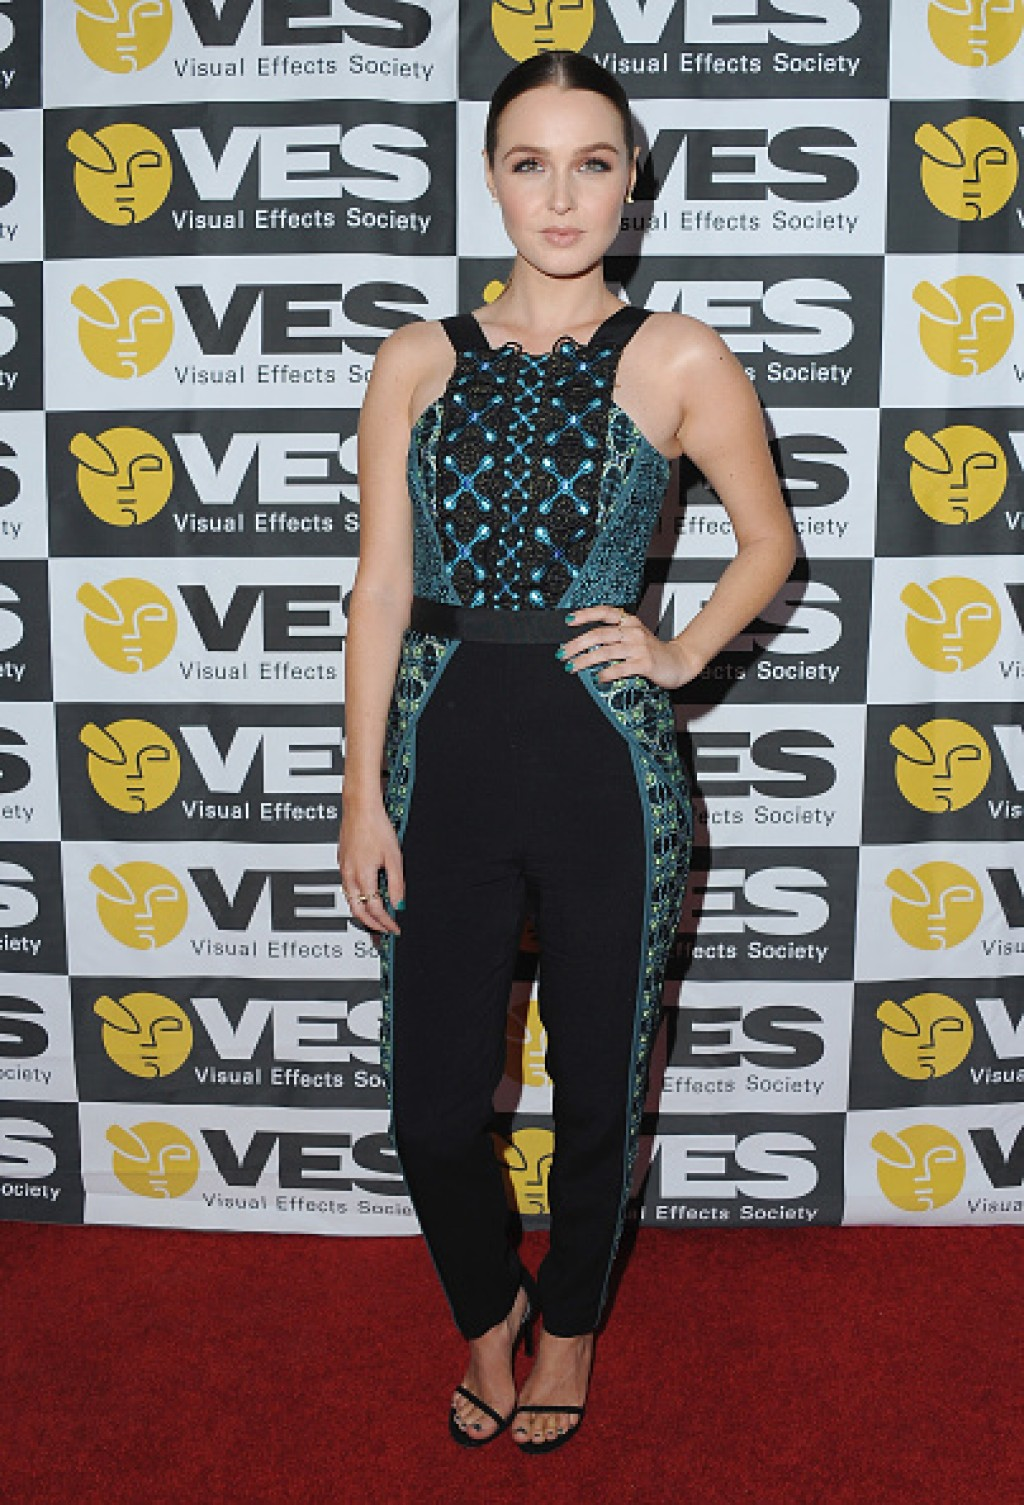 2016-VES-Awards-Camilla-Luddington-Dress-1024x1505